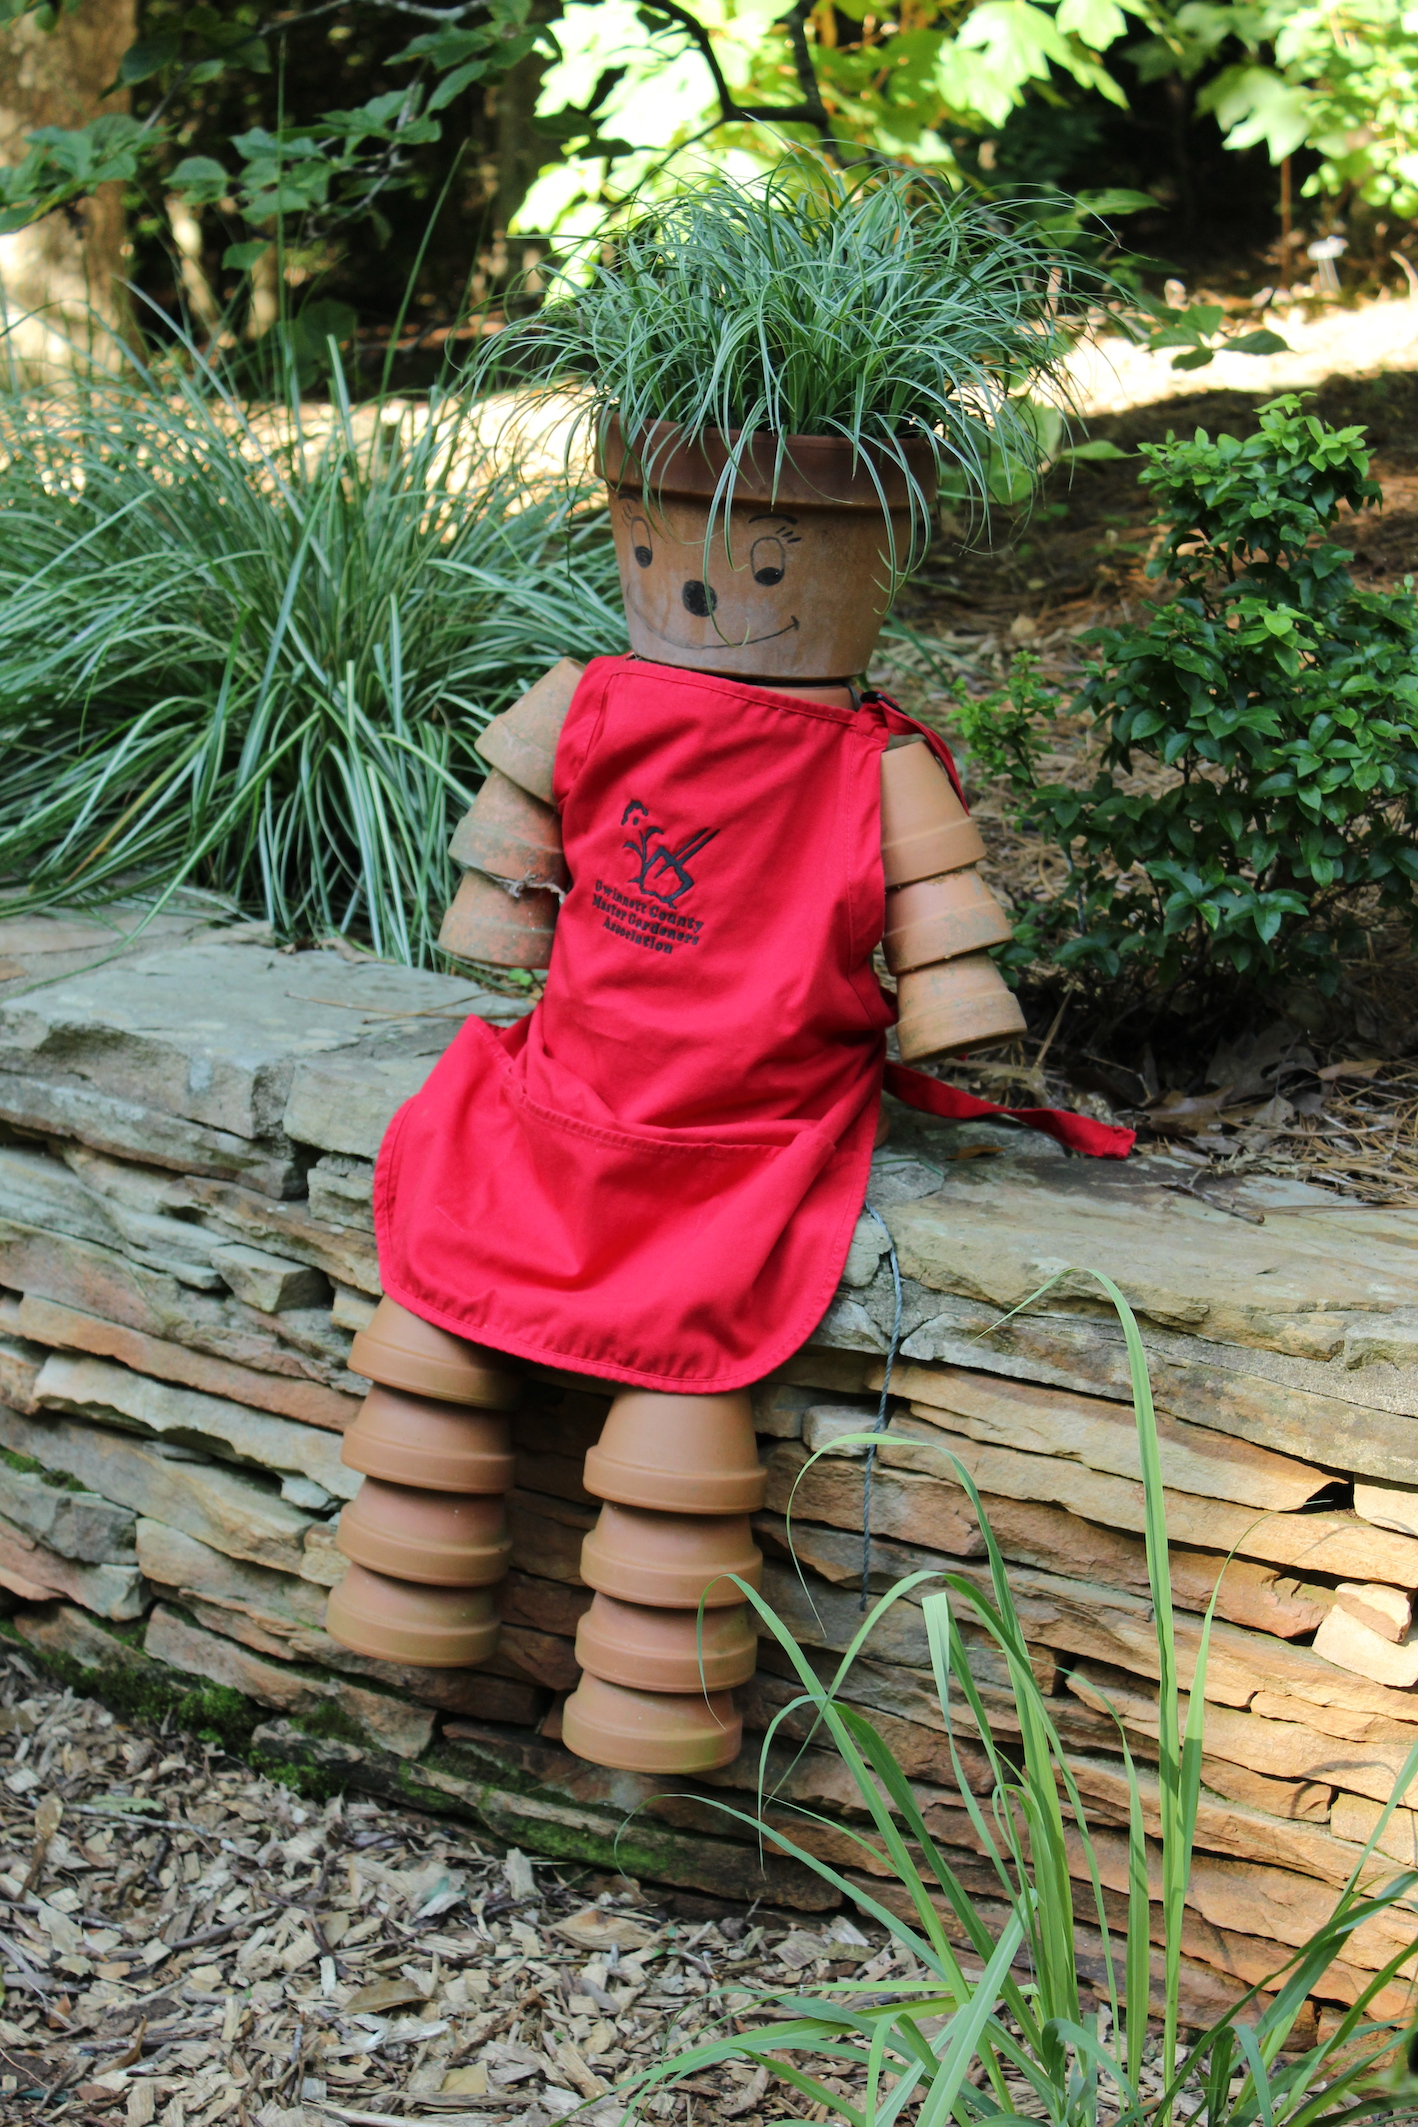 Varlamoff Garden: Potted Wonder welcomes all to the hosts' sustainable garden haven